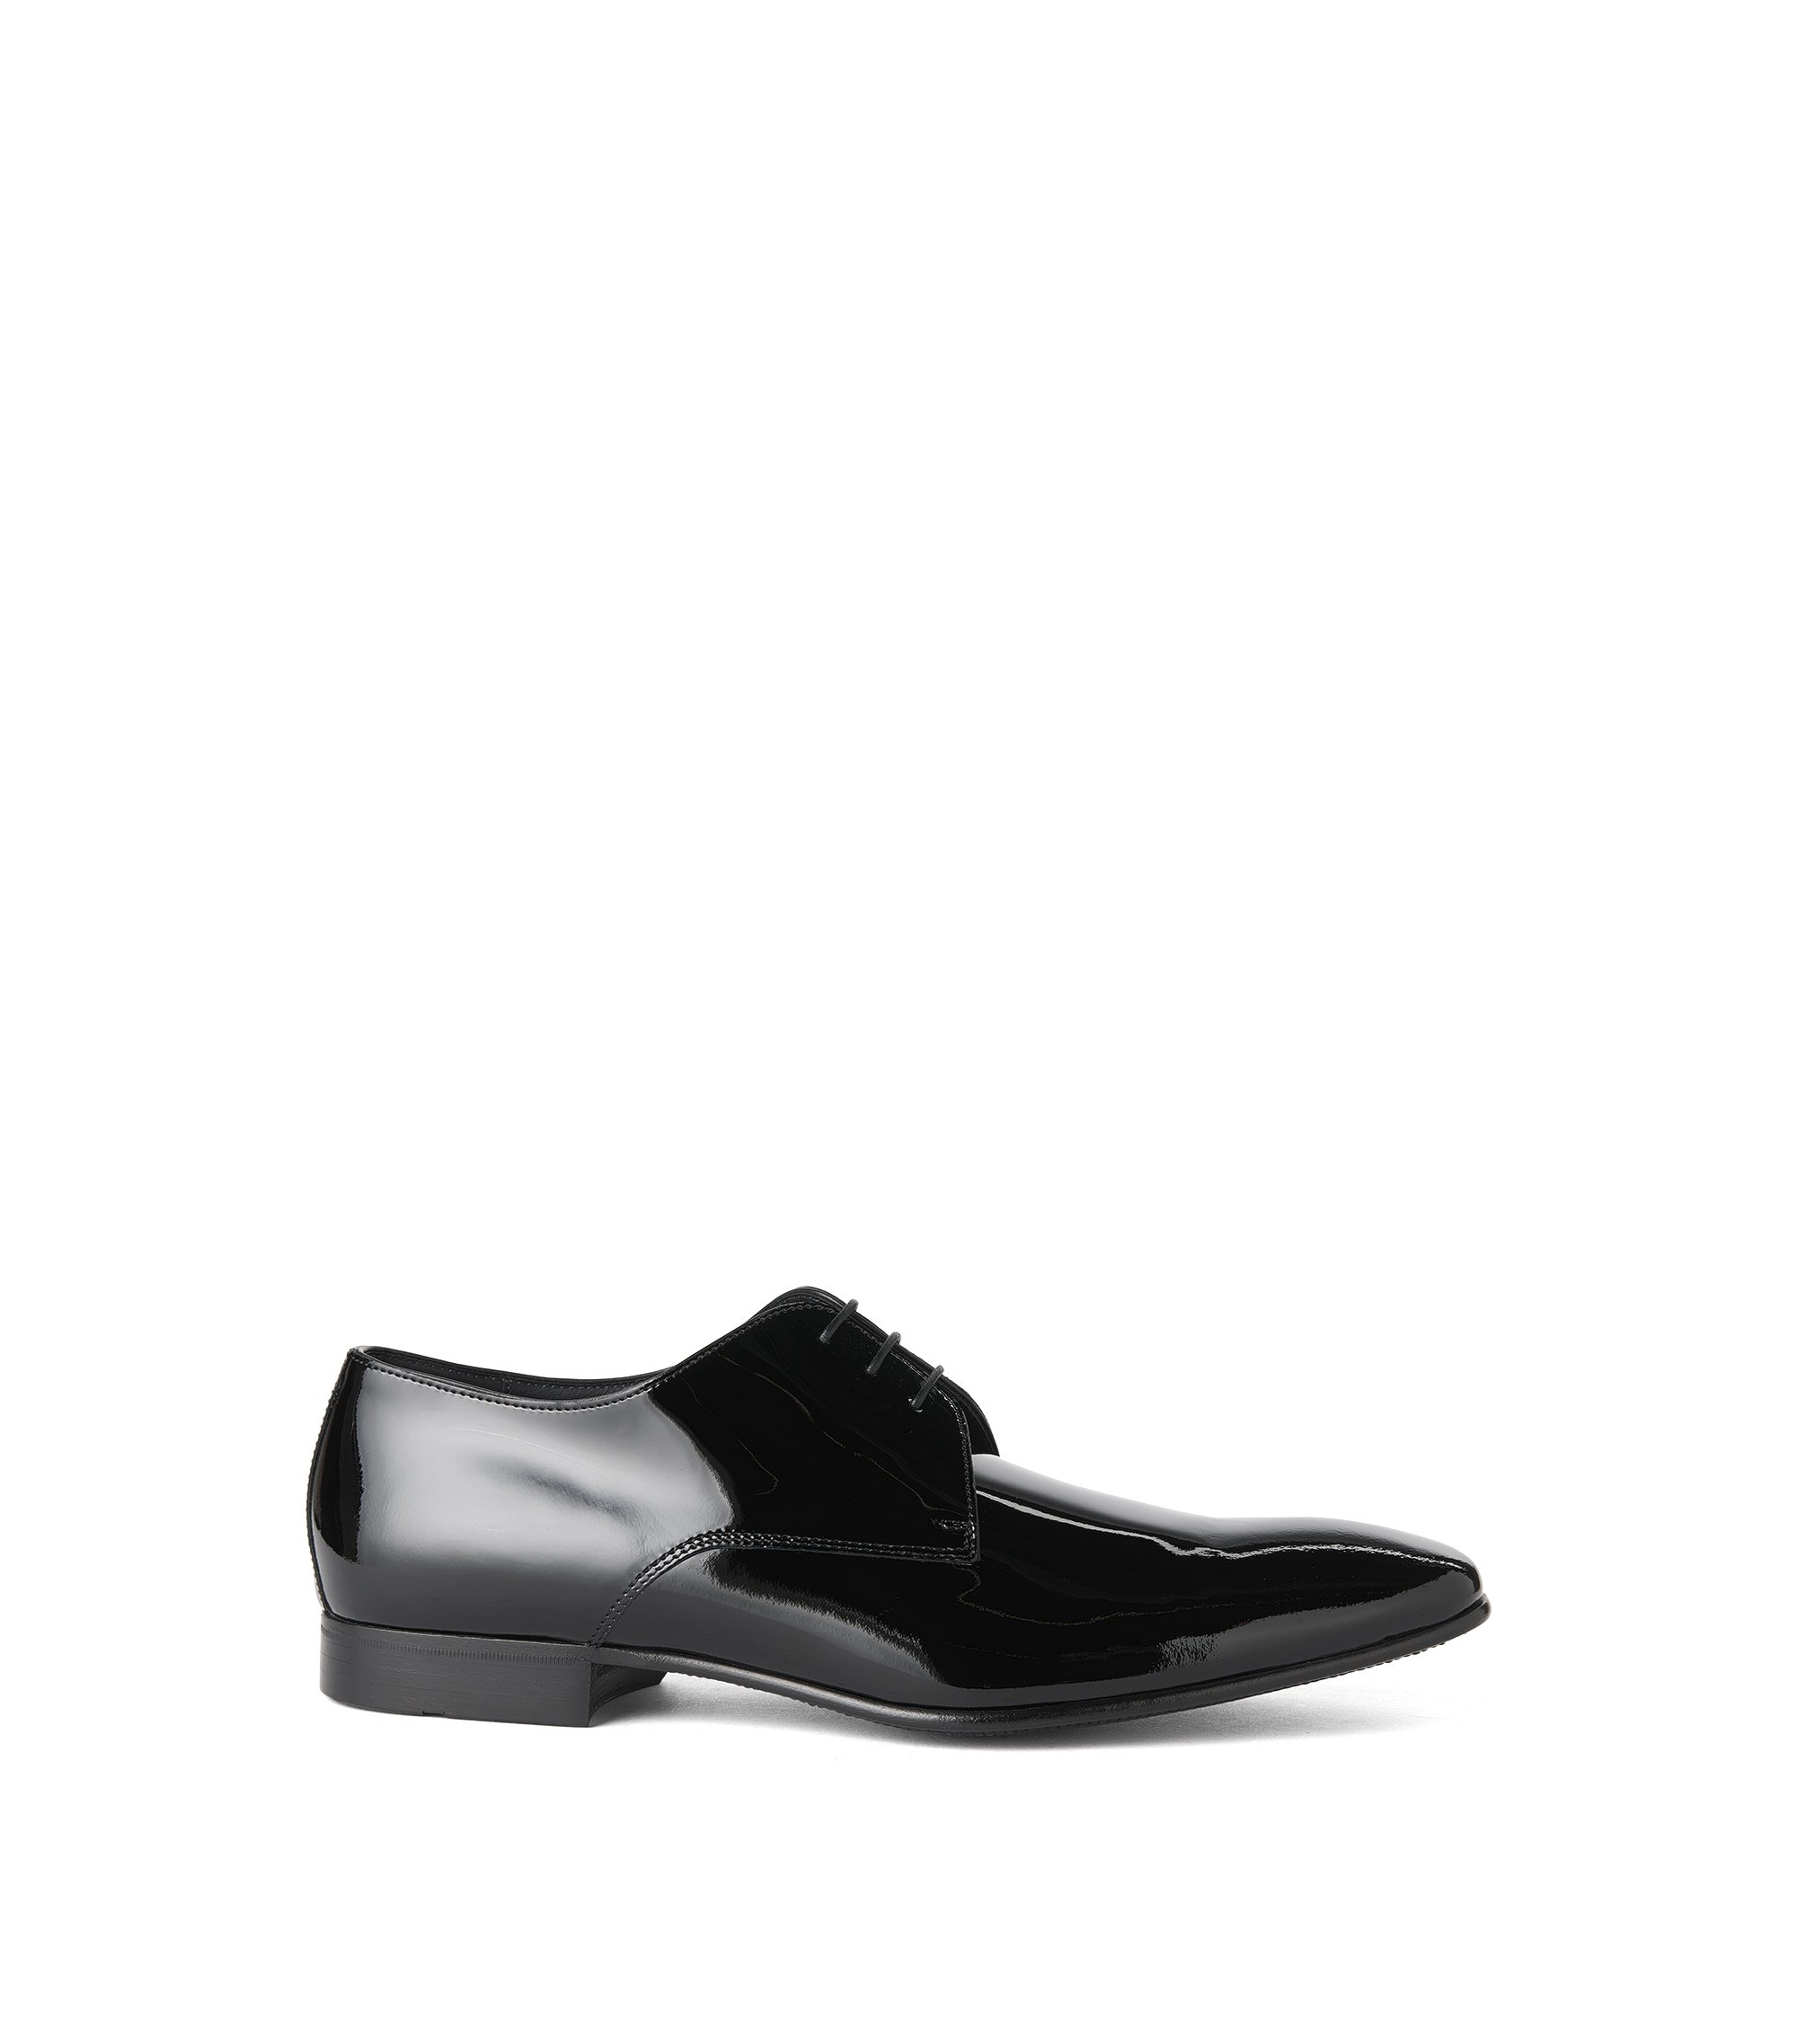 Italian Patent Leather Derby Tuxedo Shoe | Cristallo, Black